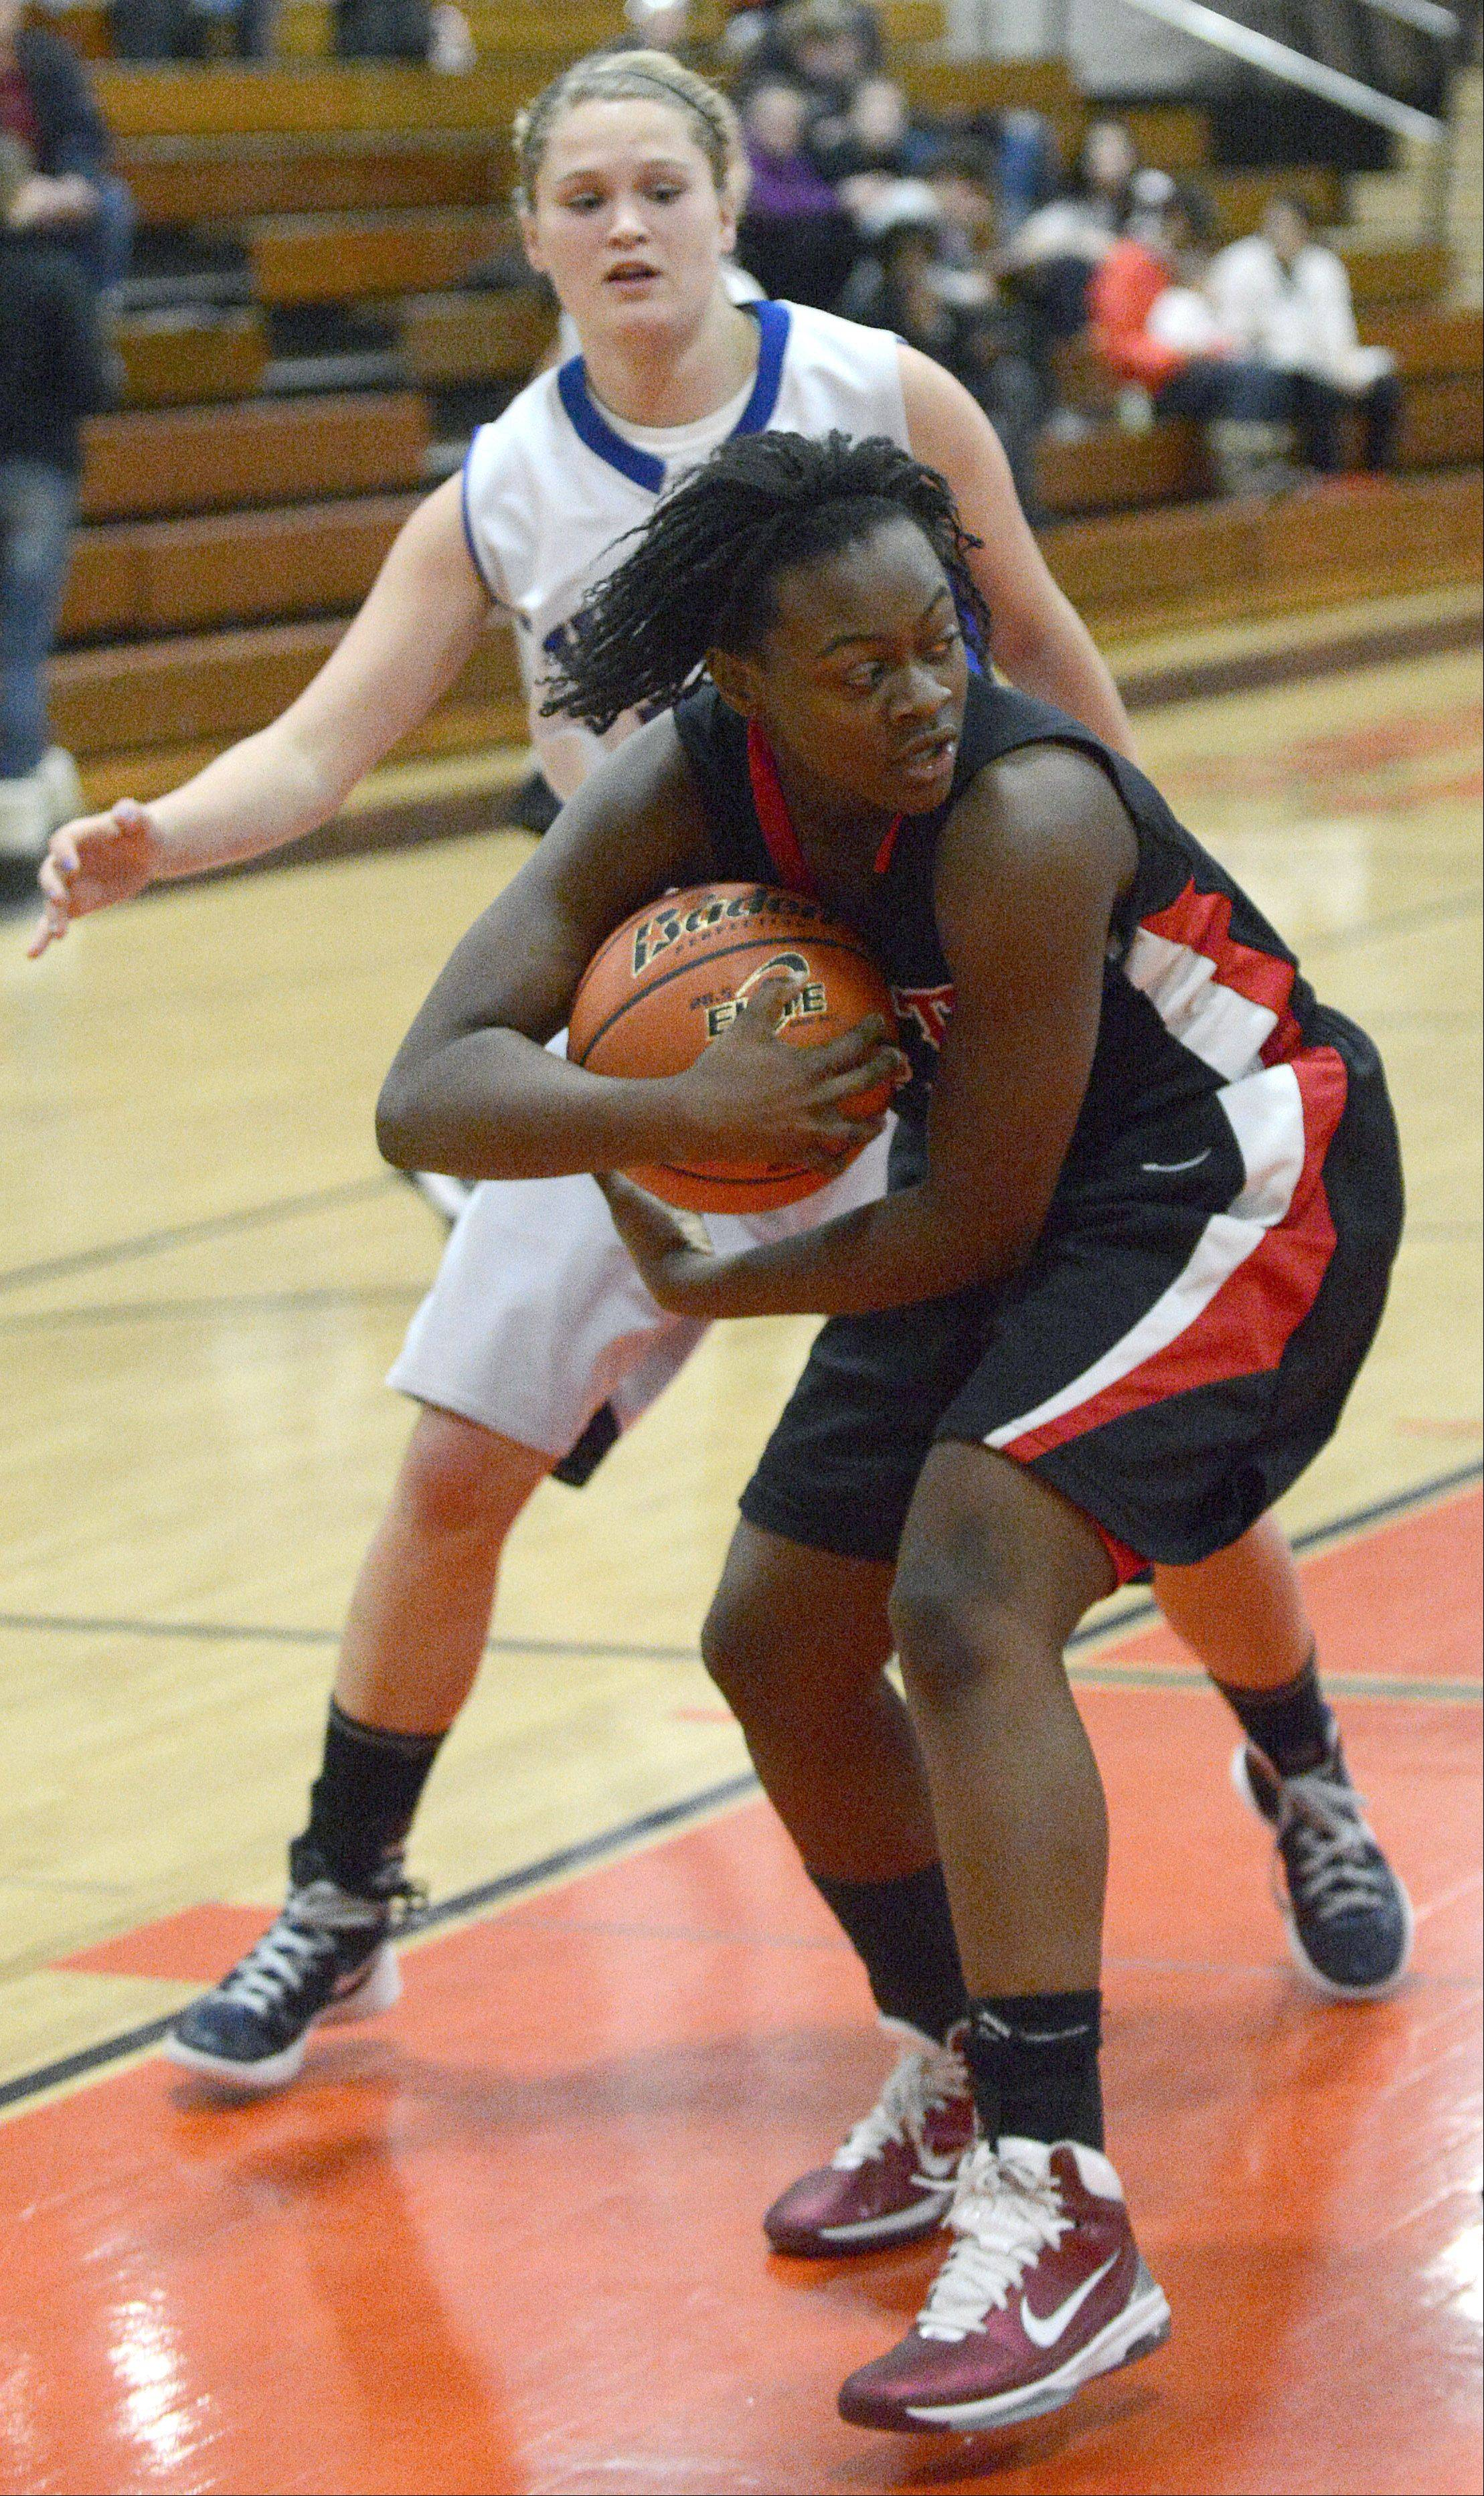 Glenbard East's Tajanae Key protects a rebound from Geneva's Janie McCloughan in the second quarter on Tuesday at St. Charles East.